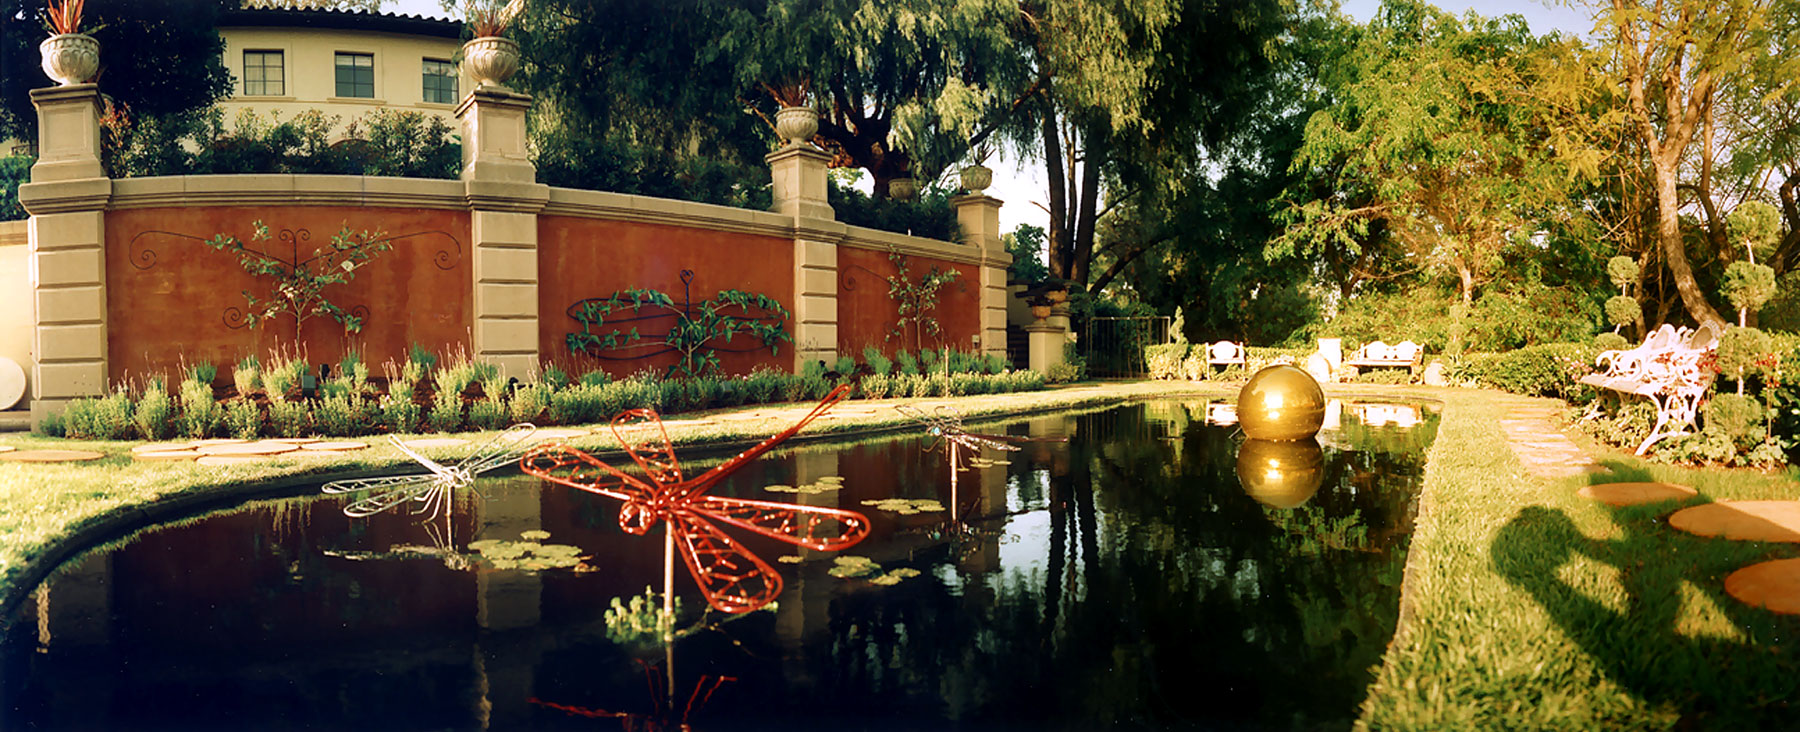 Jeweled Reflecting Garden | Pasadena Showcase House for the Arts